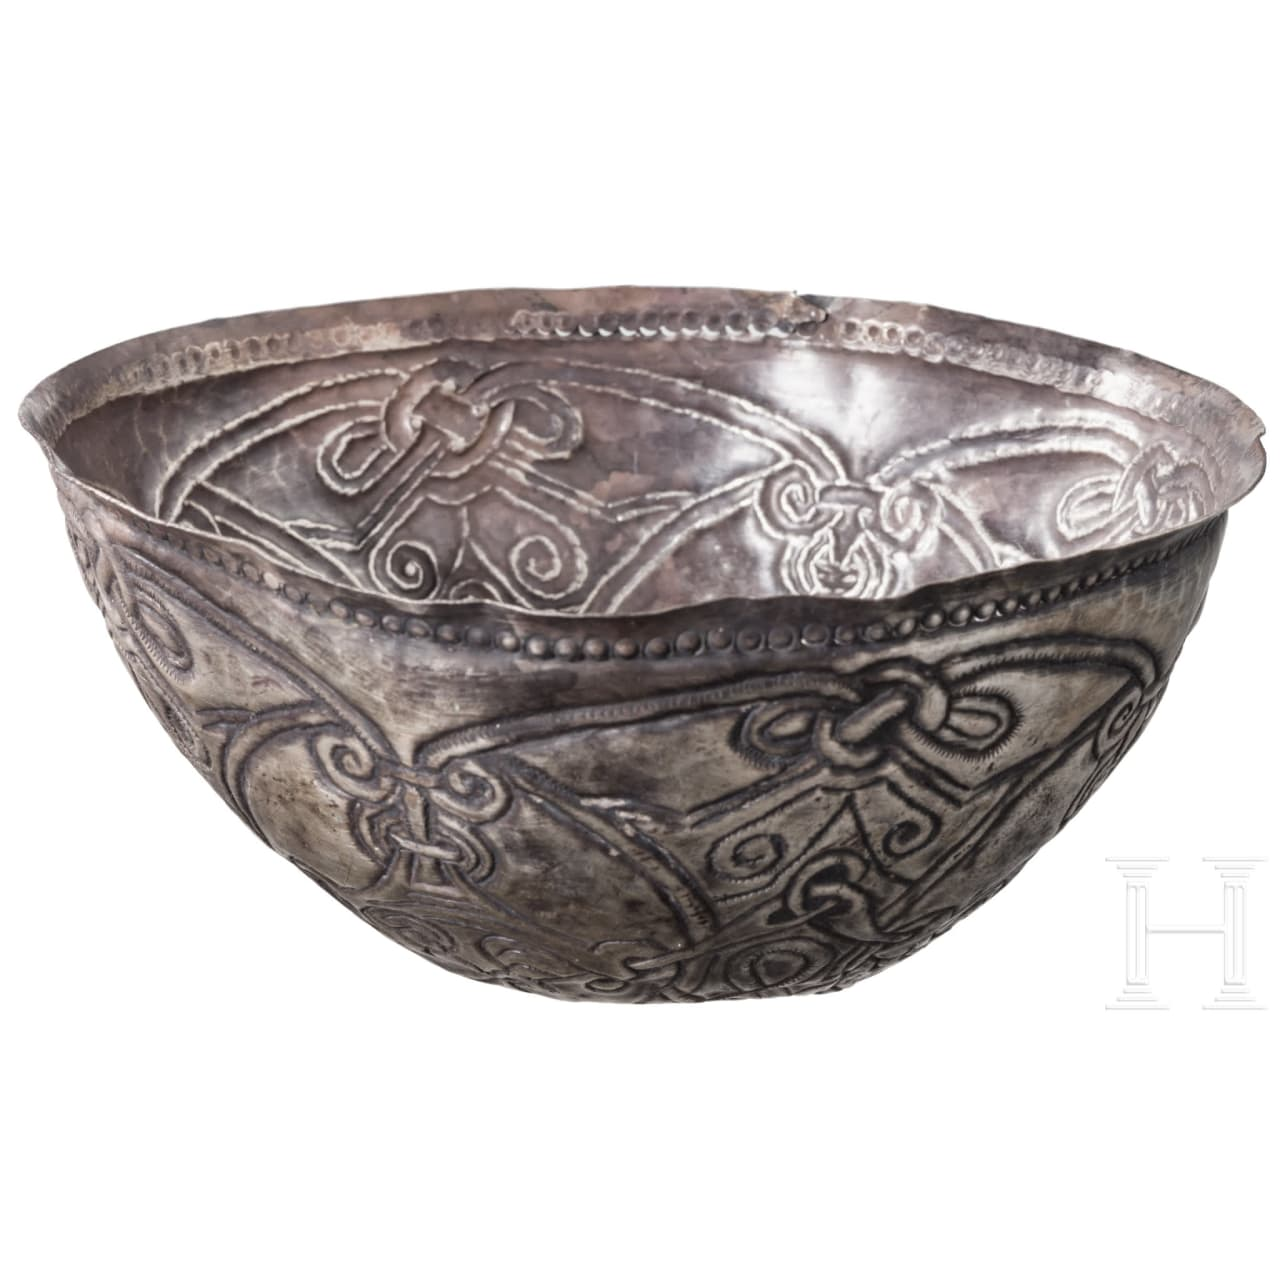 A Viking silver bowl, 9th - 10th century